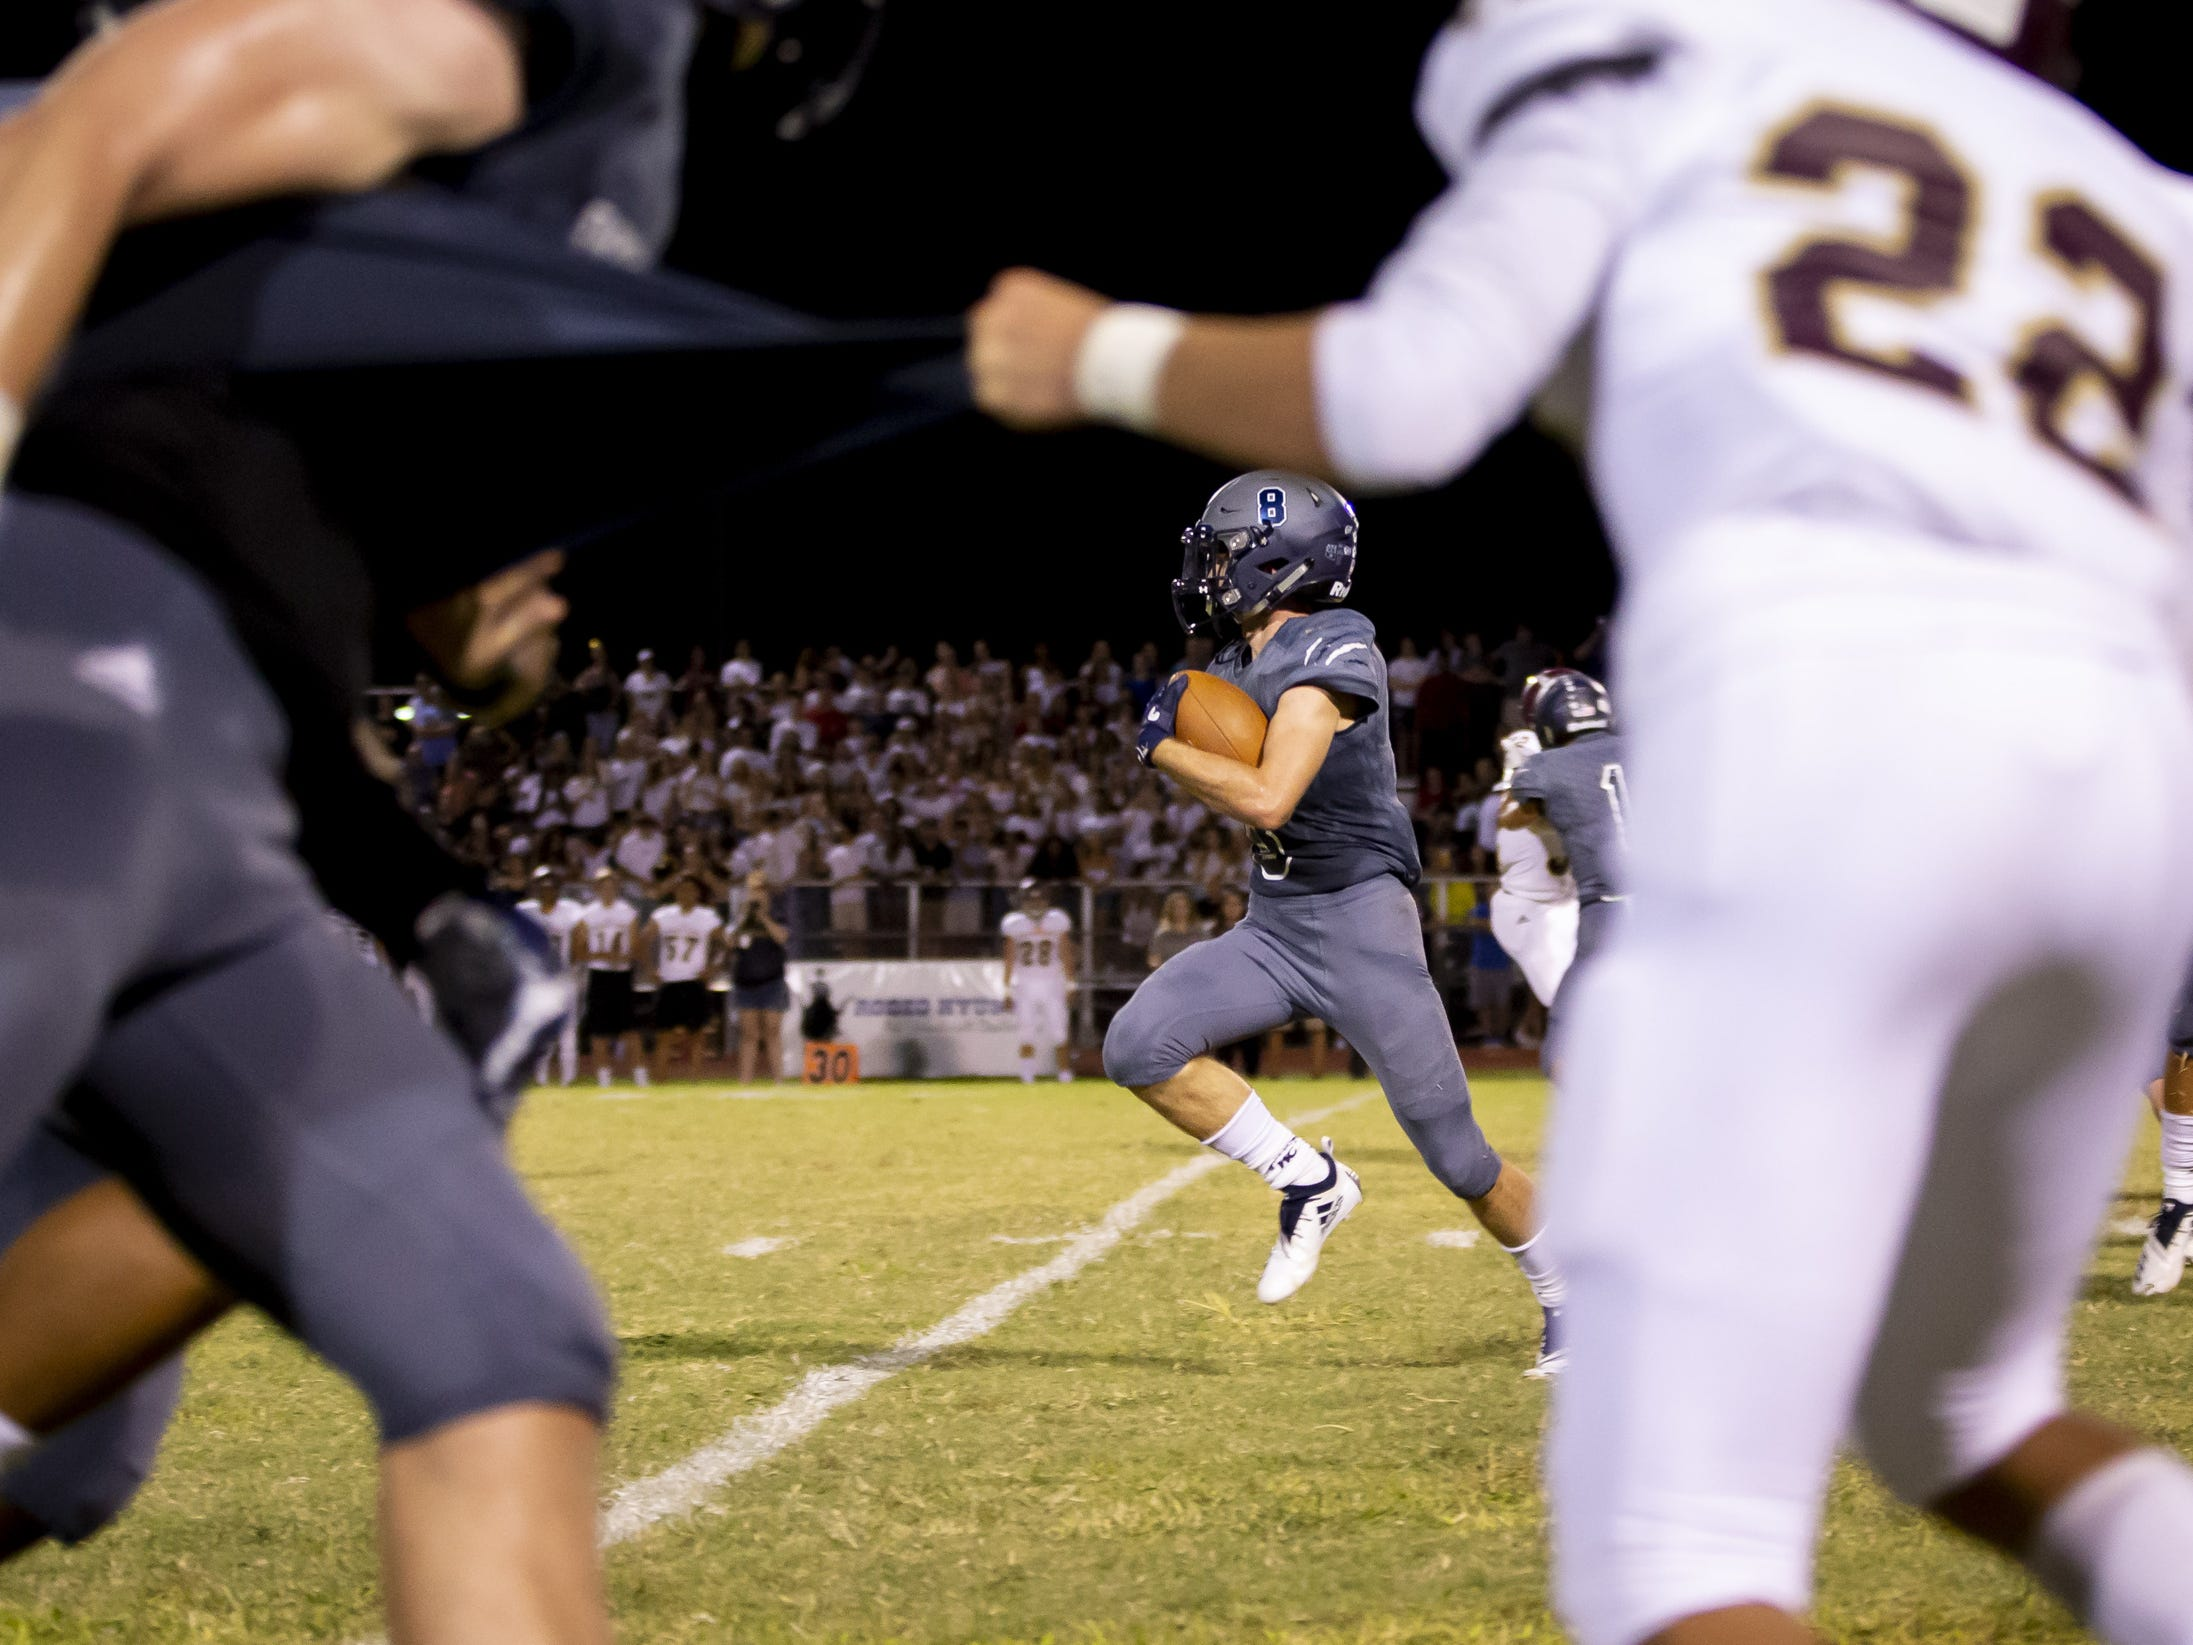 Senior running back Zachary Swinbourne (8) of the Willow Canyon Wildcats runs the ball against the Shadow Ridge Stallions at Willow Canyon High School on Friday, September 7, 2018 in Surprise, Arizona. #azhsfb